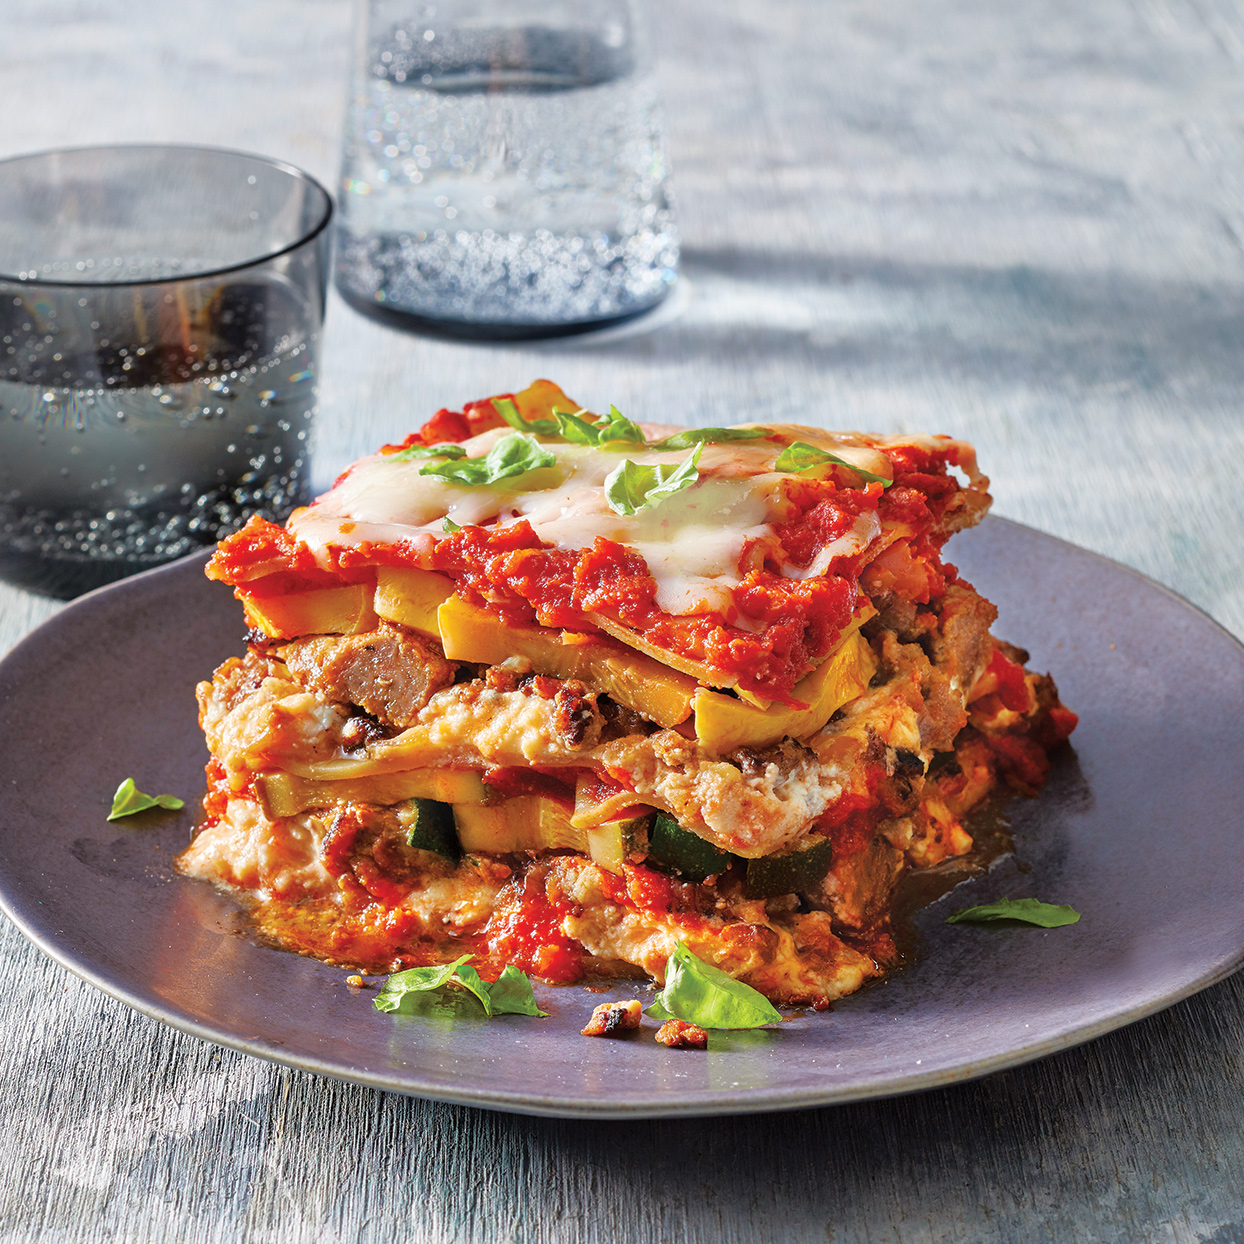 Kids will love this lasagna made with turkey sausage in the Crock Pot--and parents will love that it's packed with vitamin-rich zucchini and squash! The veggies also add moisture to the slow-cooker lasagna, which keeps it from drying out. Serve with garlic toast, if desired. Source: Everyday Slow Cooker